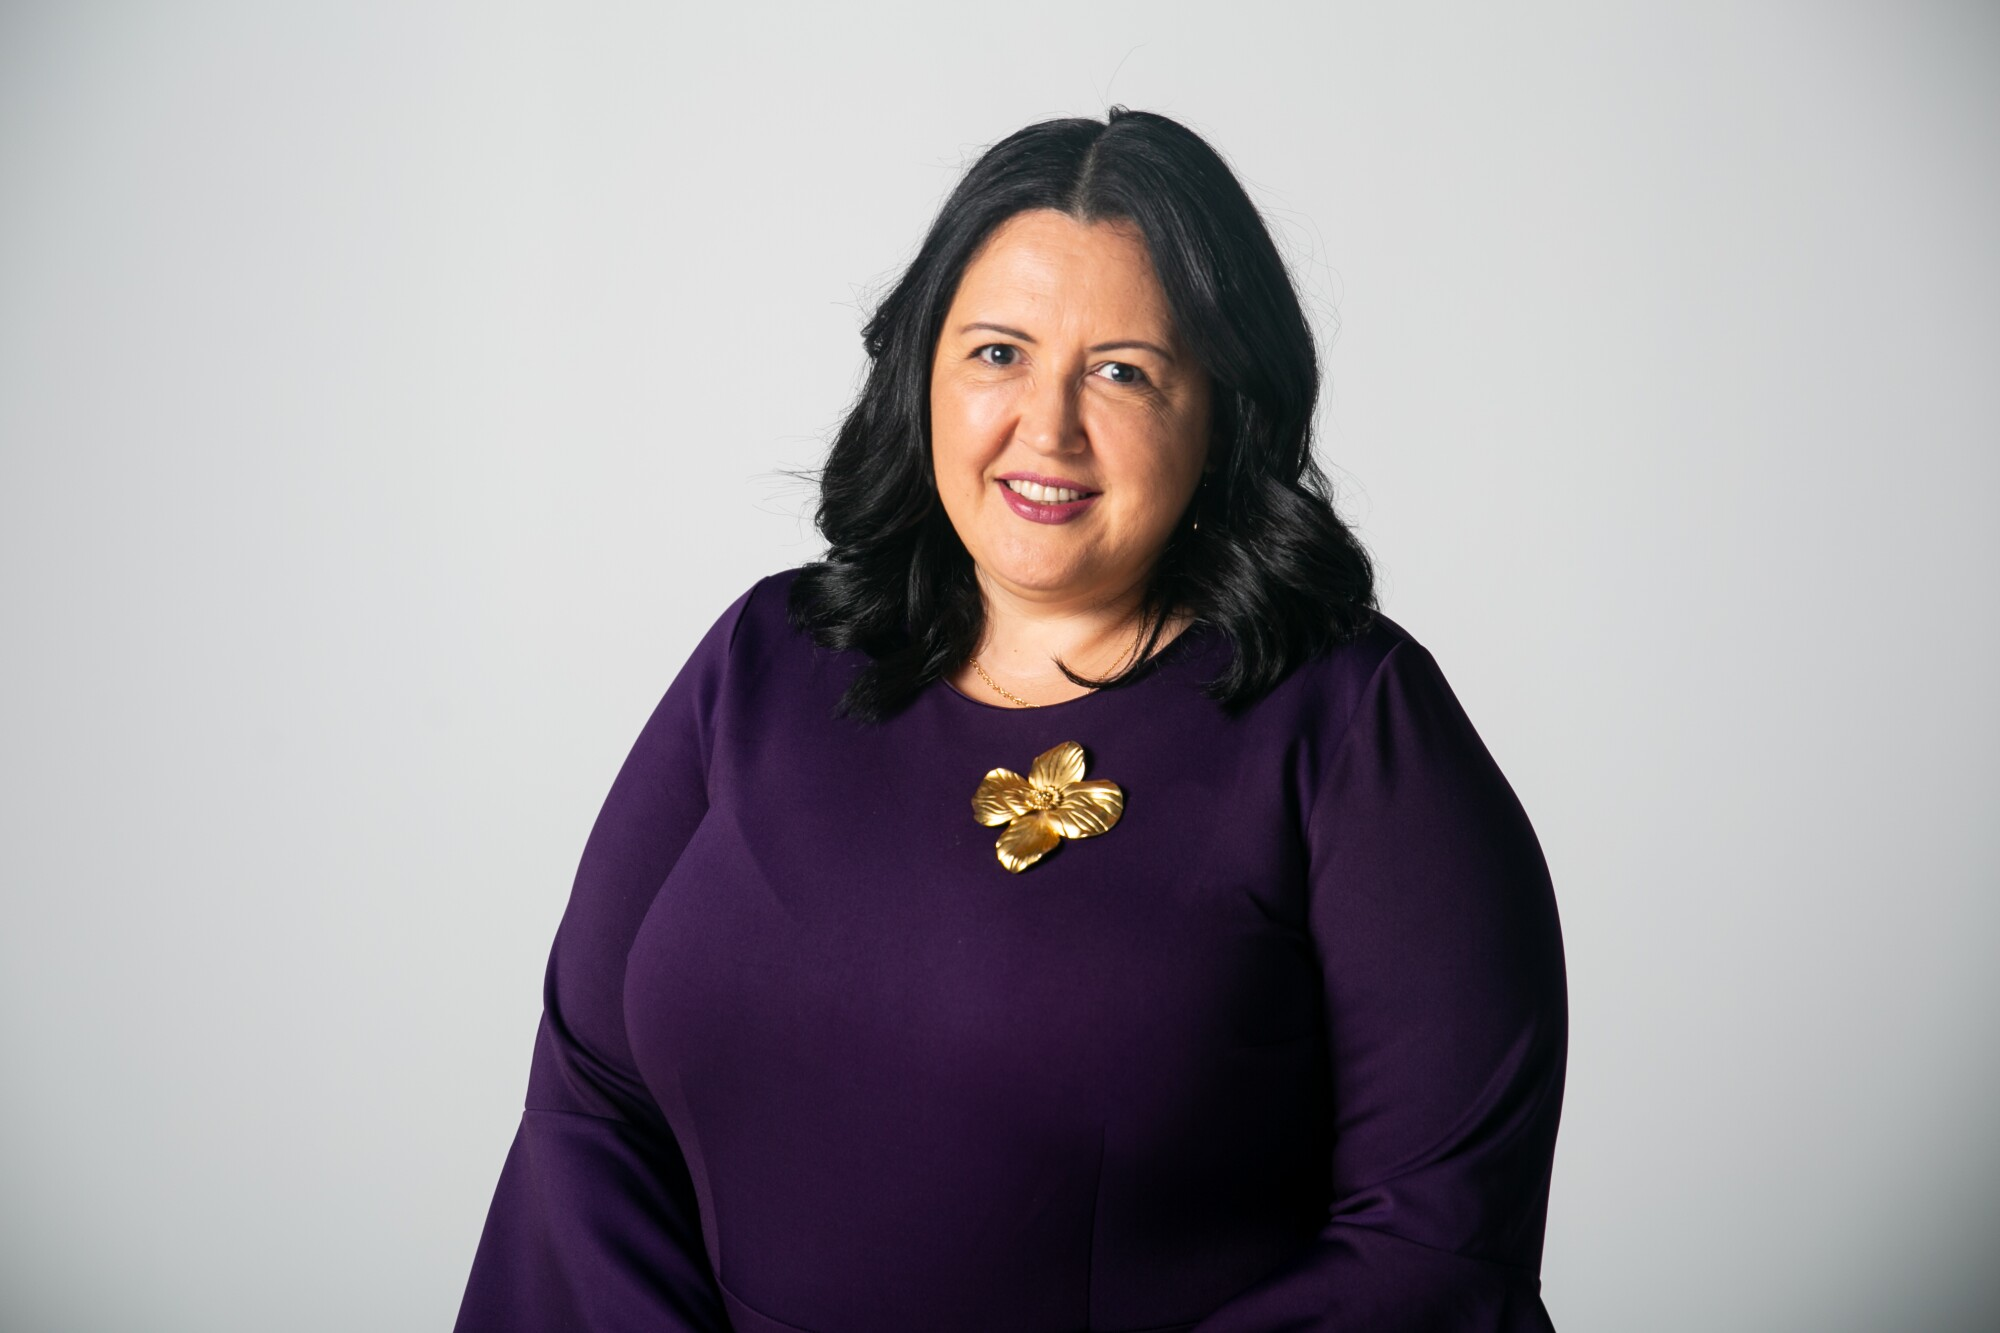 Nora Vargas, candidate for the San Diego County Board of Supervisors District 1